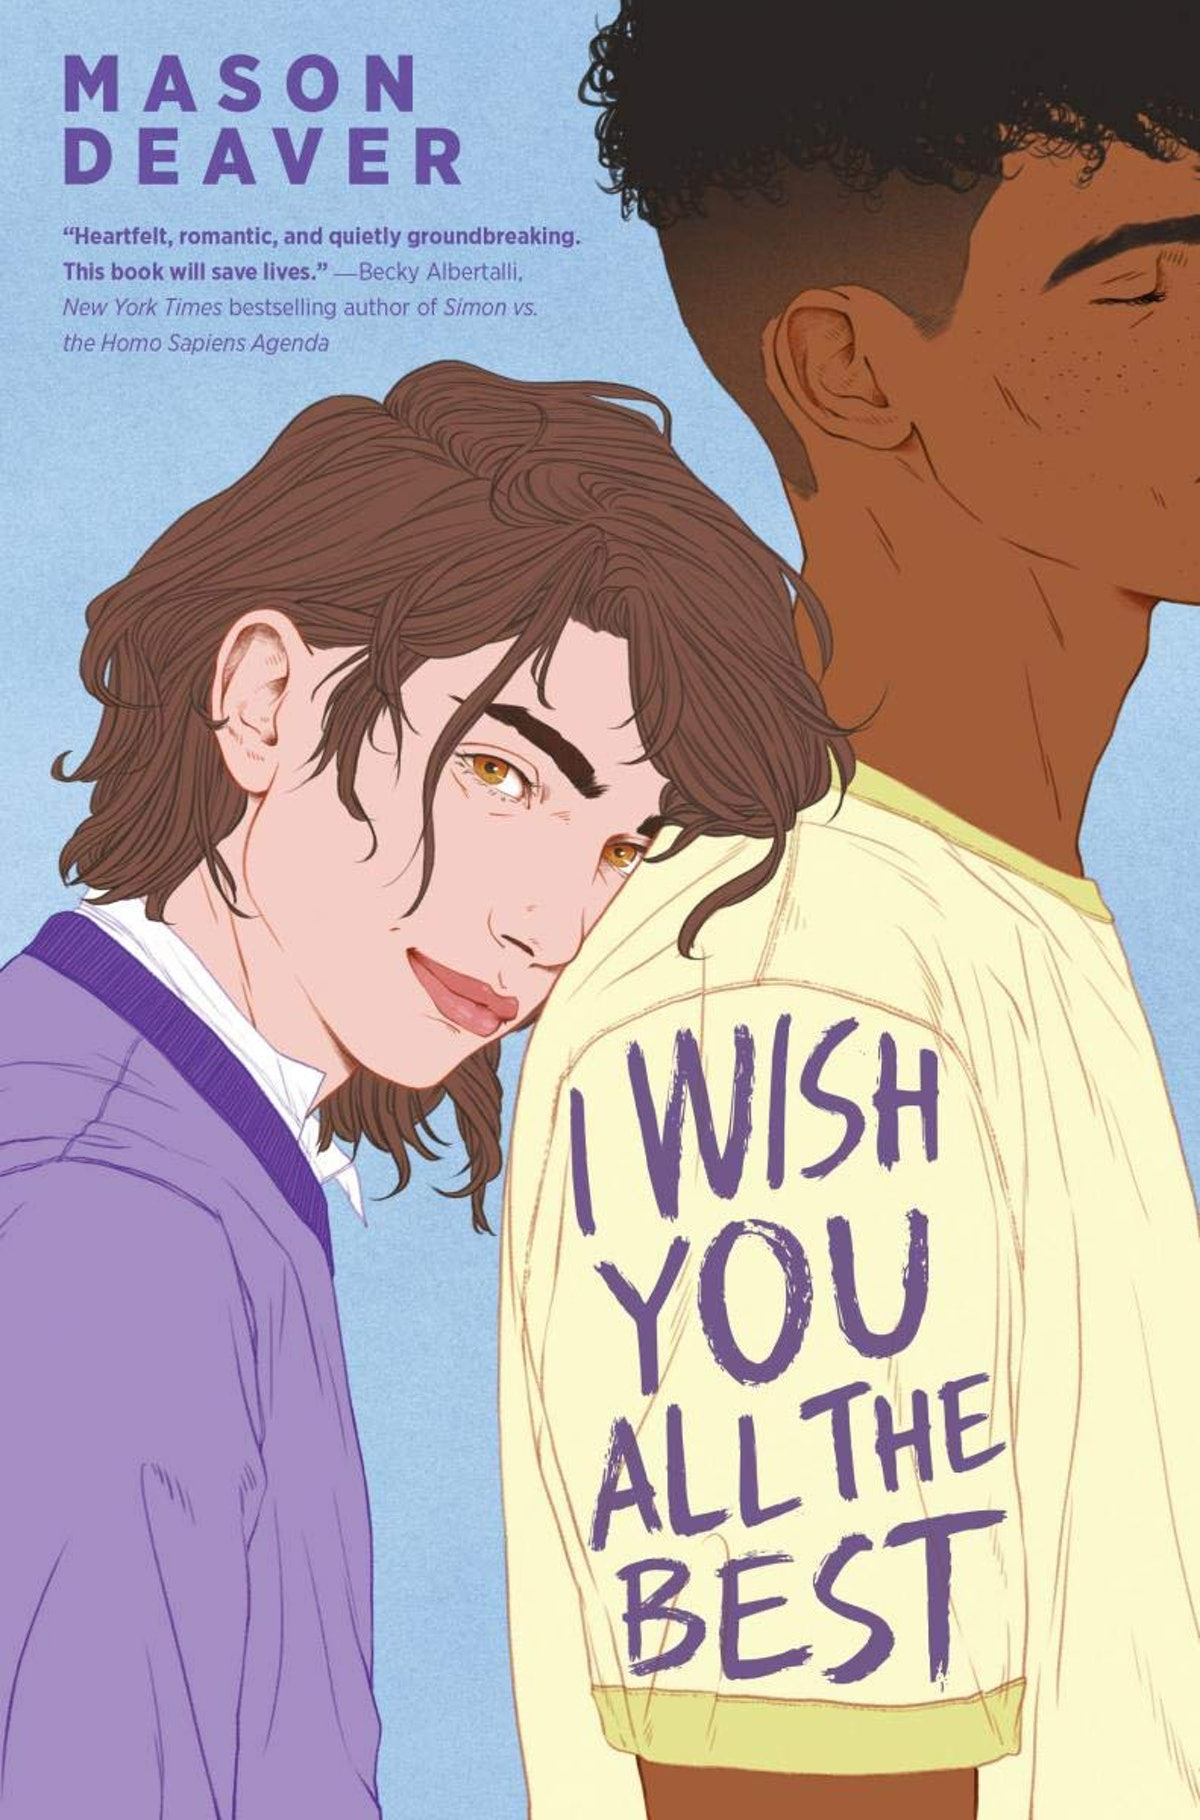 'I Wish You All The Best' — Mason Deaver